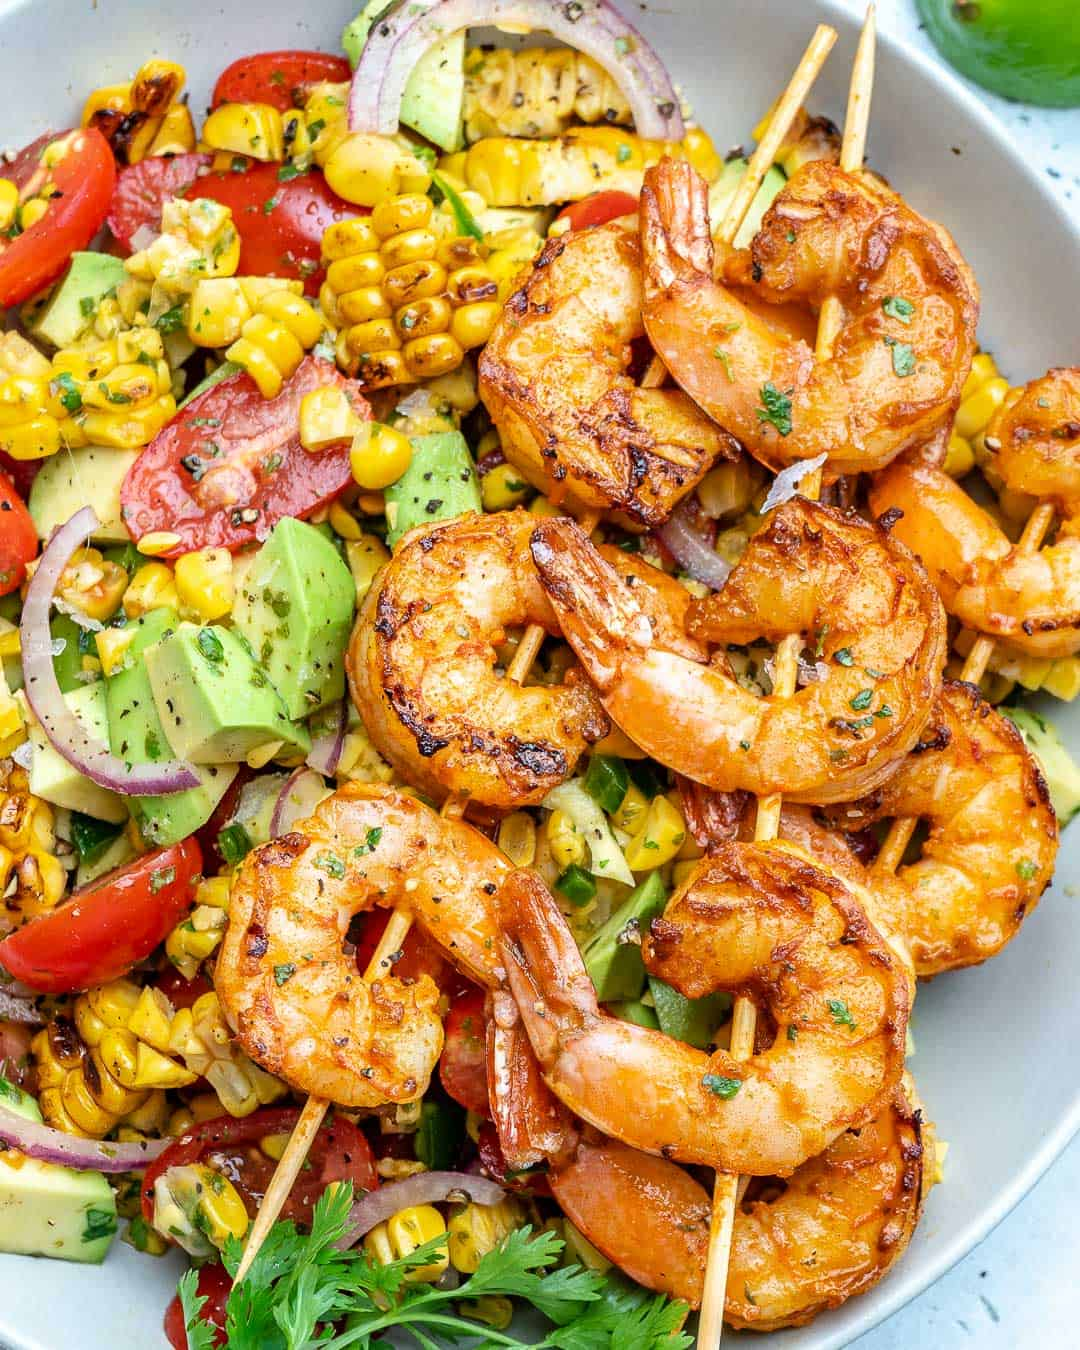 corn salad in a white bowl topped with grilled shrimp